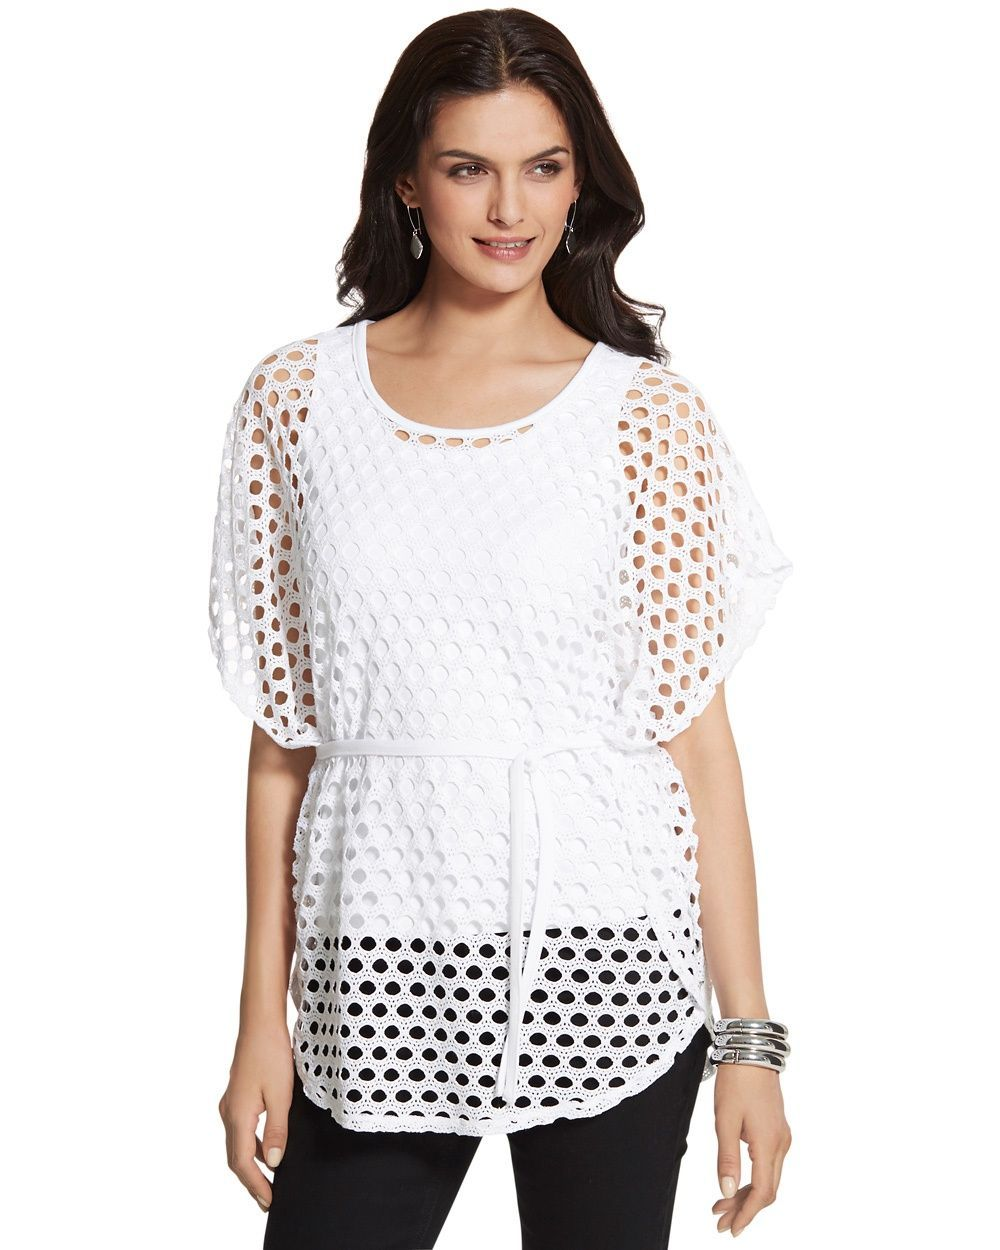 Chicos Owen Open Knit Top Chicos Tops And Sweaters Pinterest